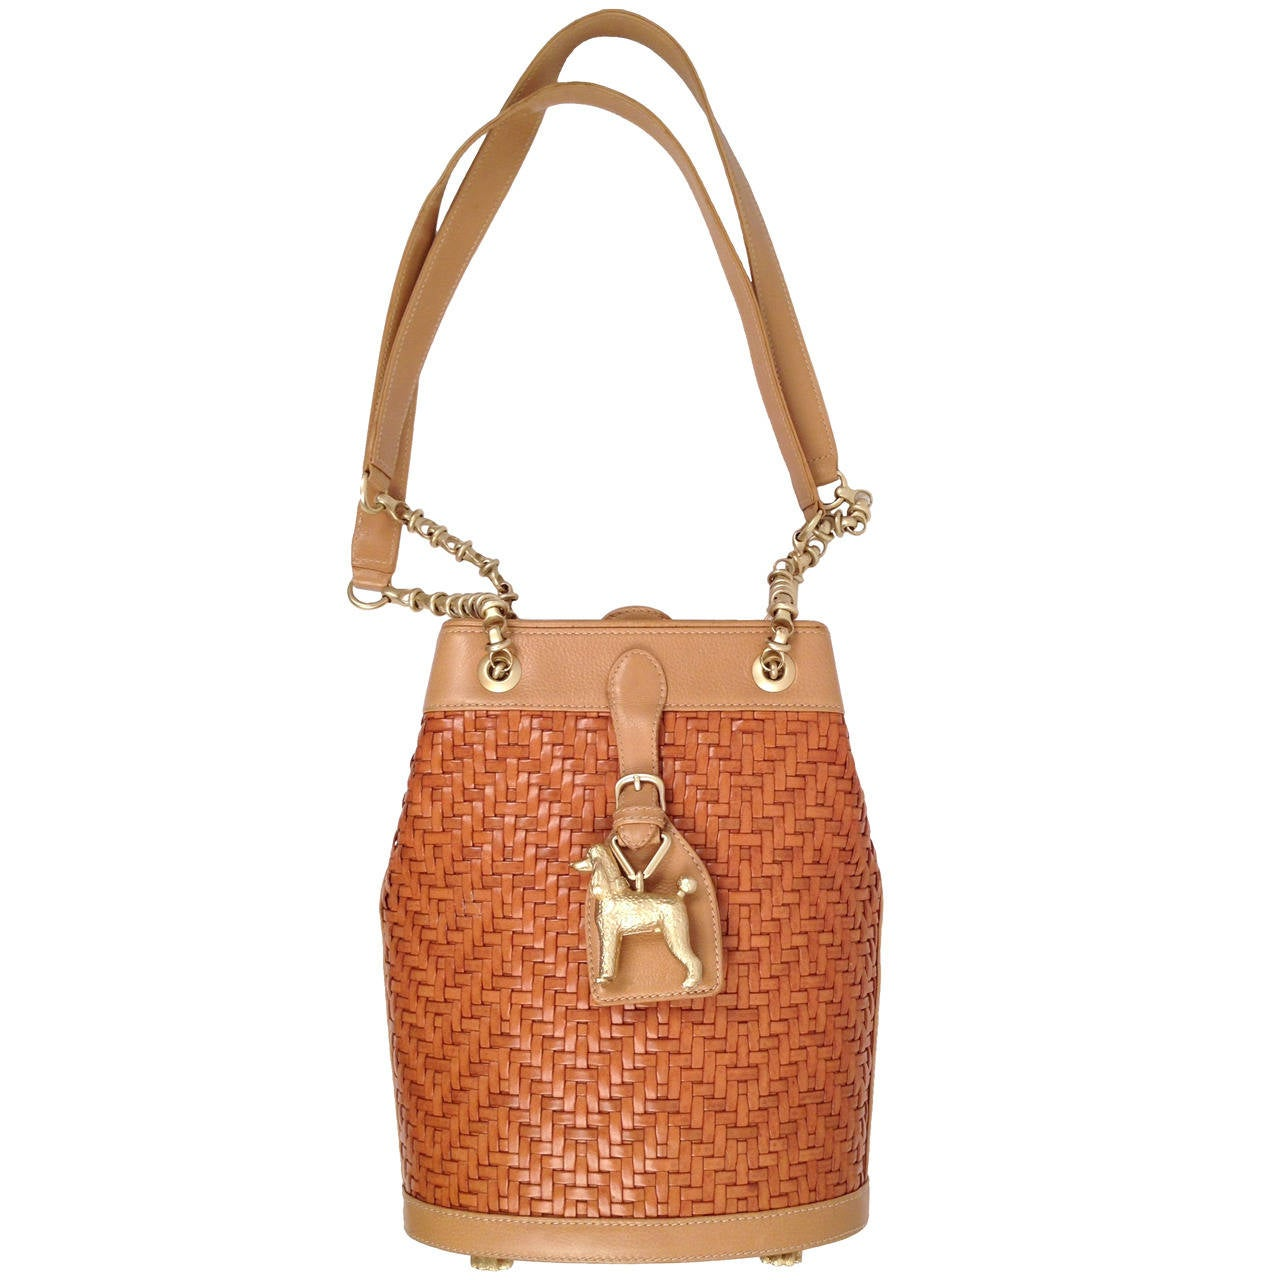 hermes crocodile bag - Kieselstein-Cord Woven Leather Tote With Poodle Charm at 1stdibs